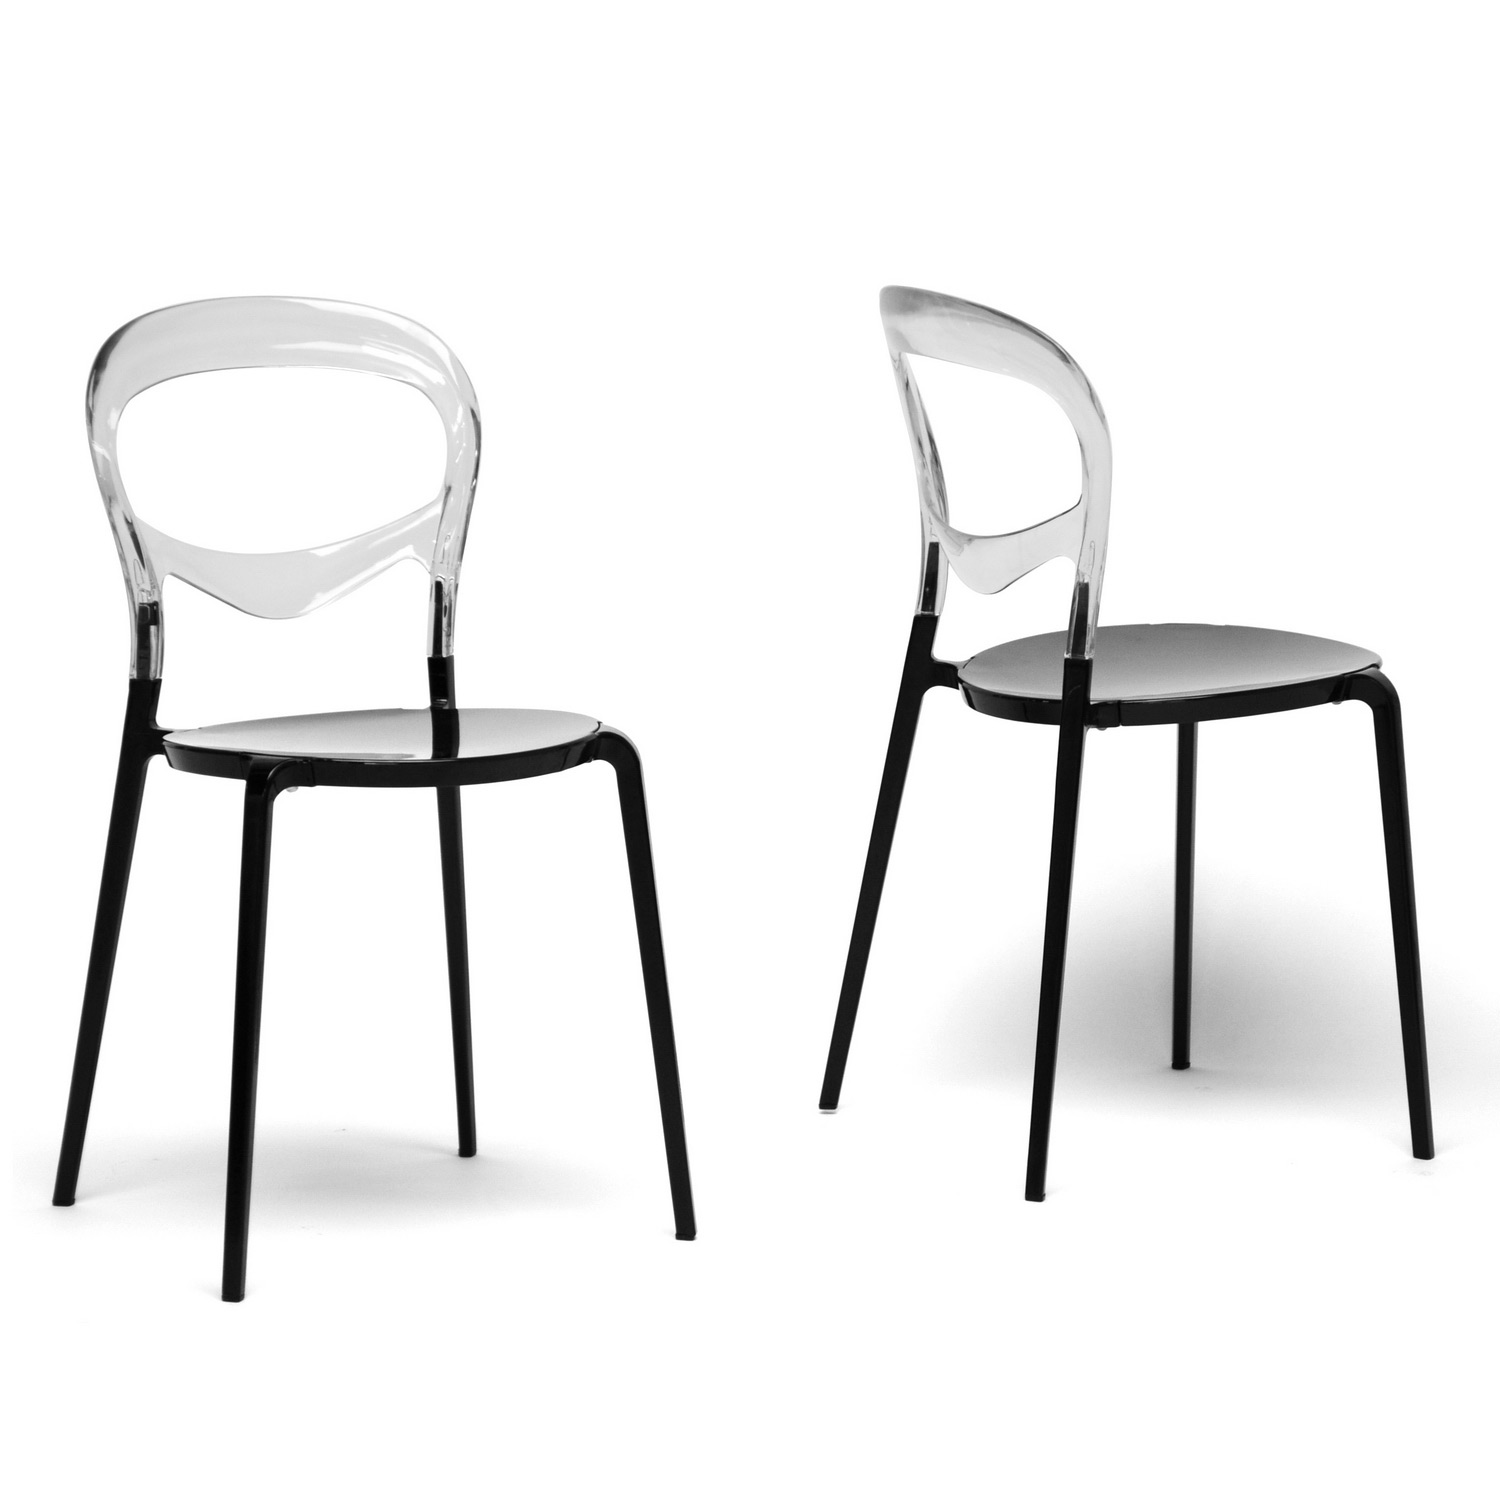 clear dining chair billiard spectator chairs orlie modern set of 2 by wholesale